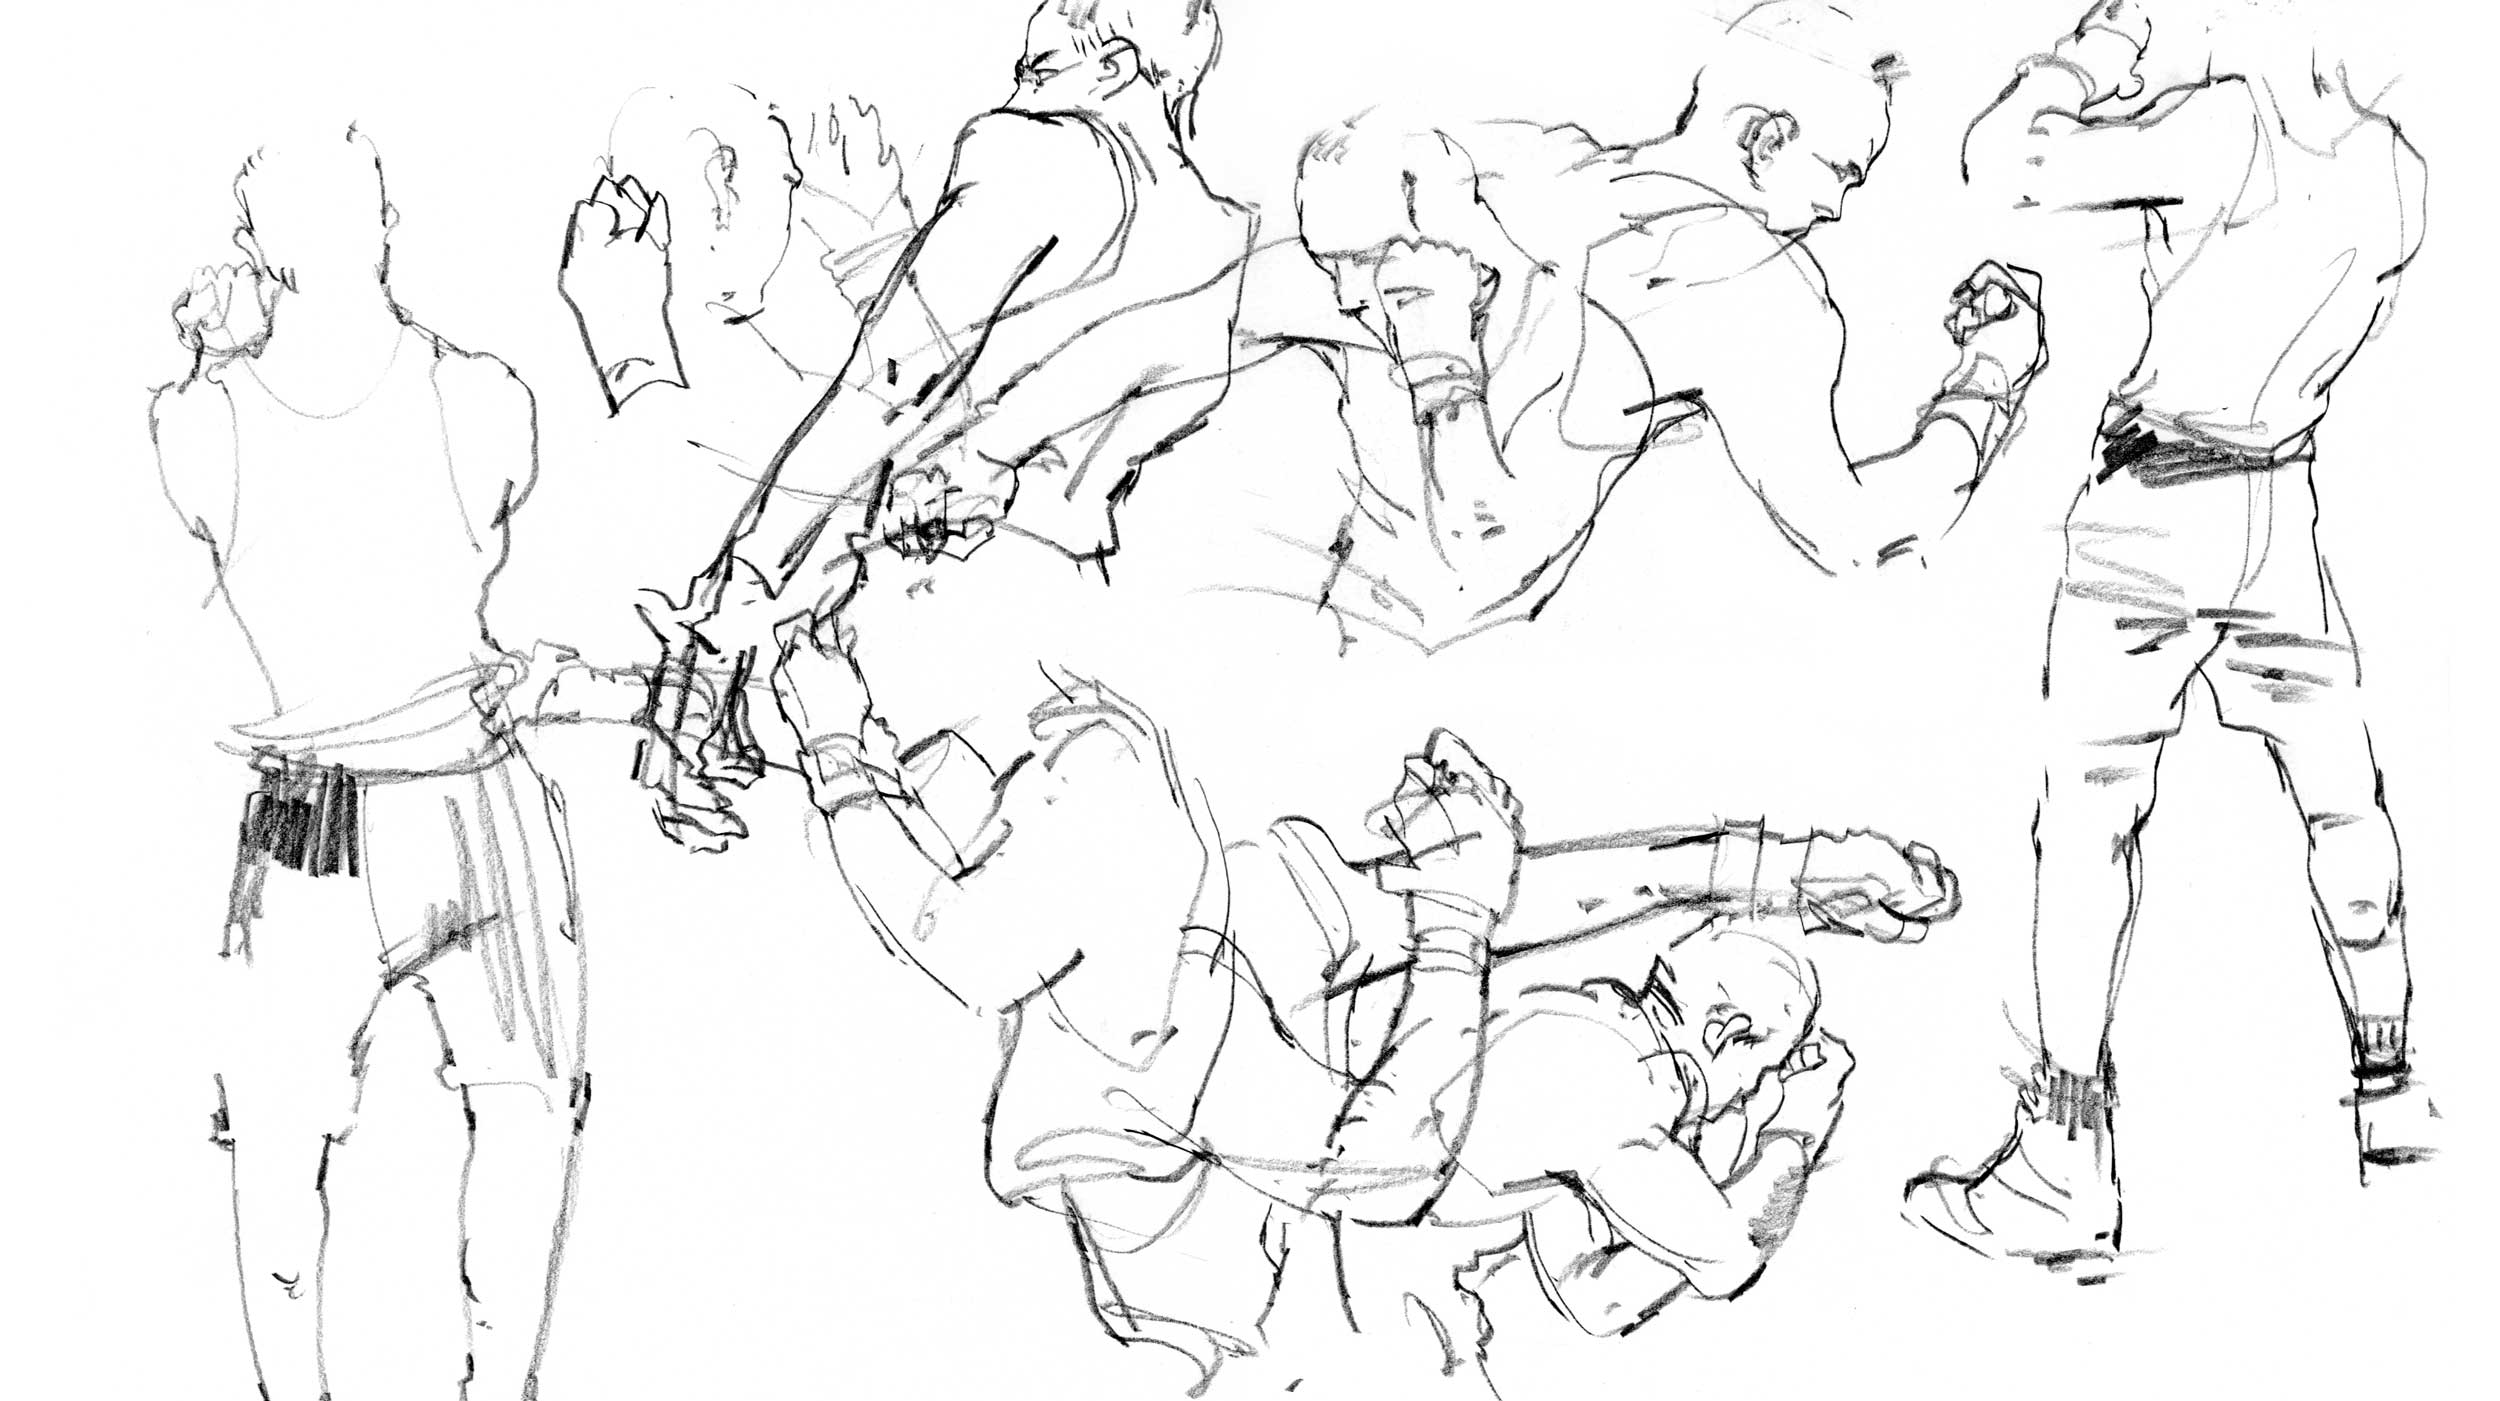 Multiple quick sketches of a boxer